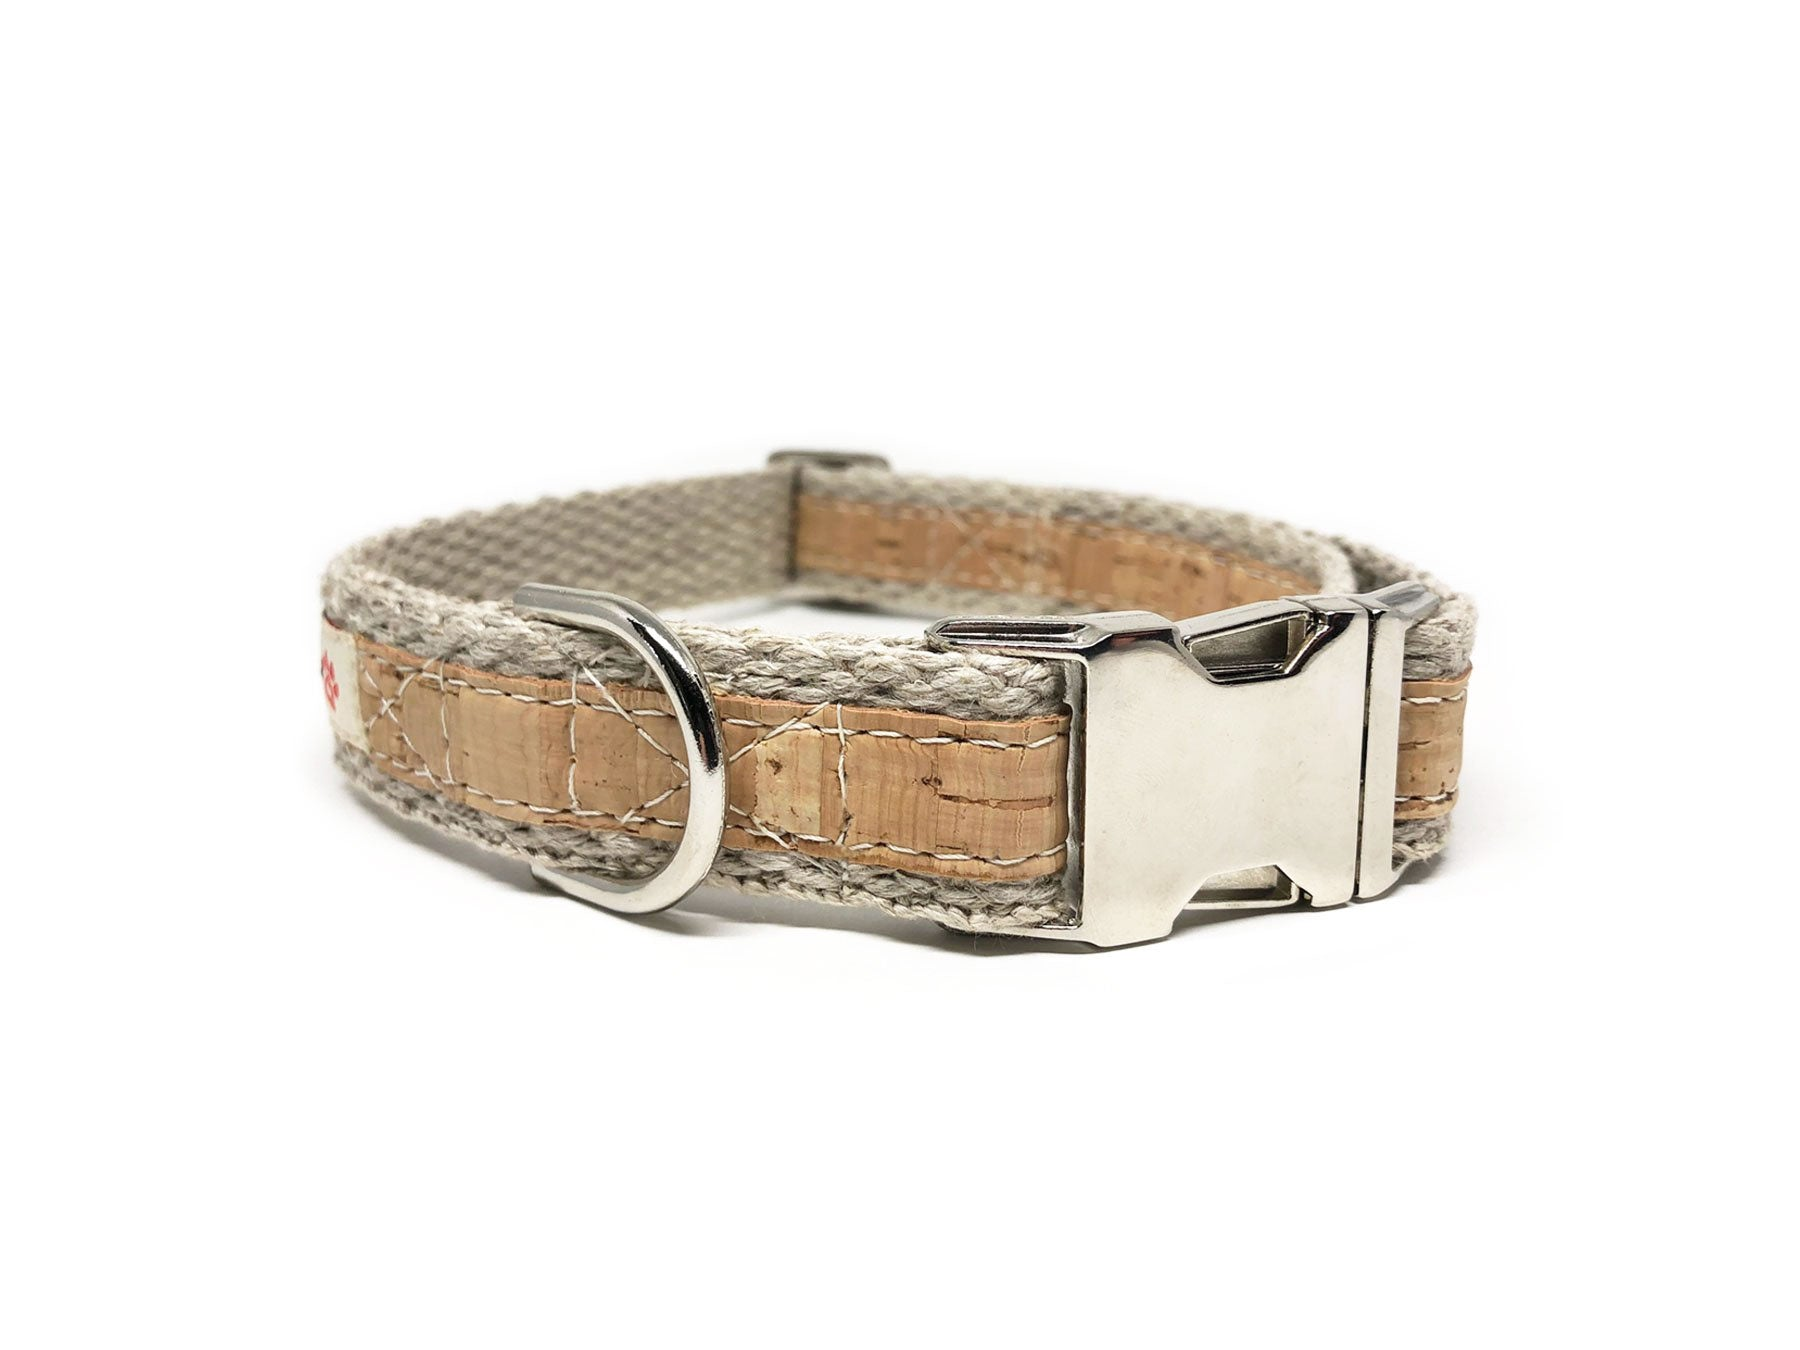 Adventurer Natural Cork Leather Large Dog Collar, Hemp Webbing